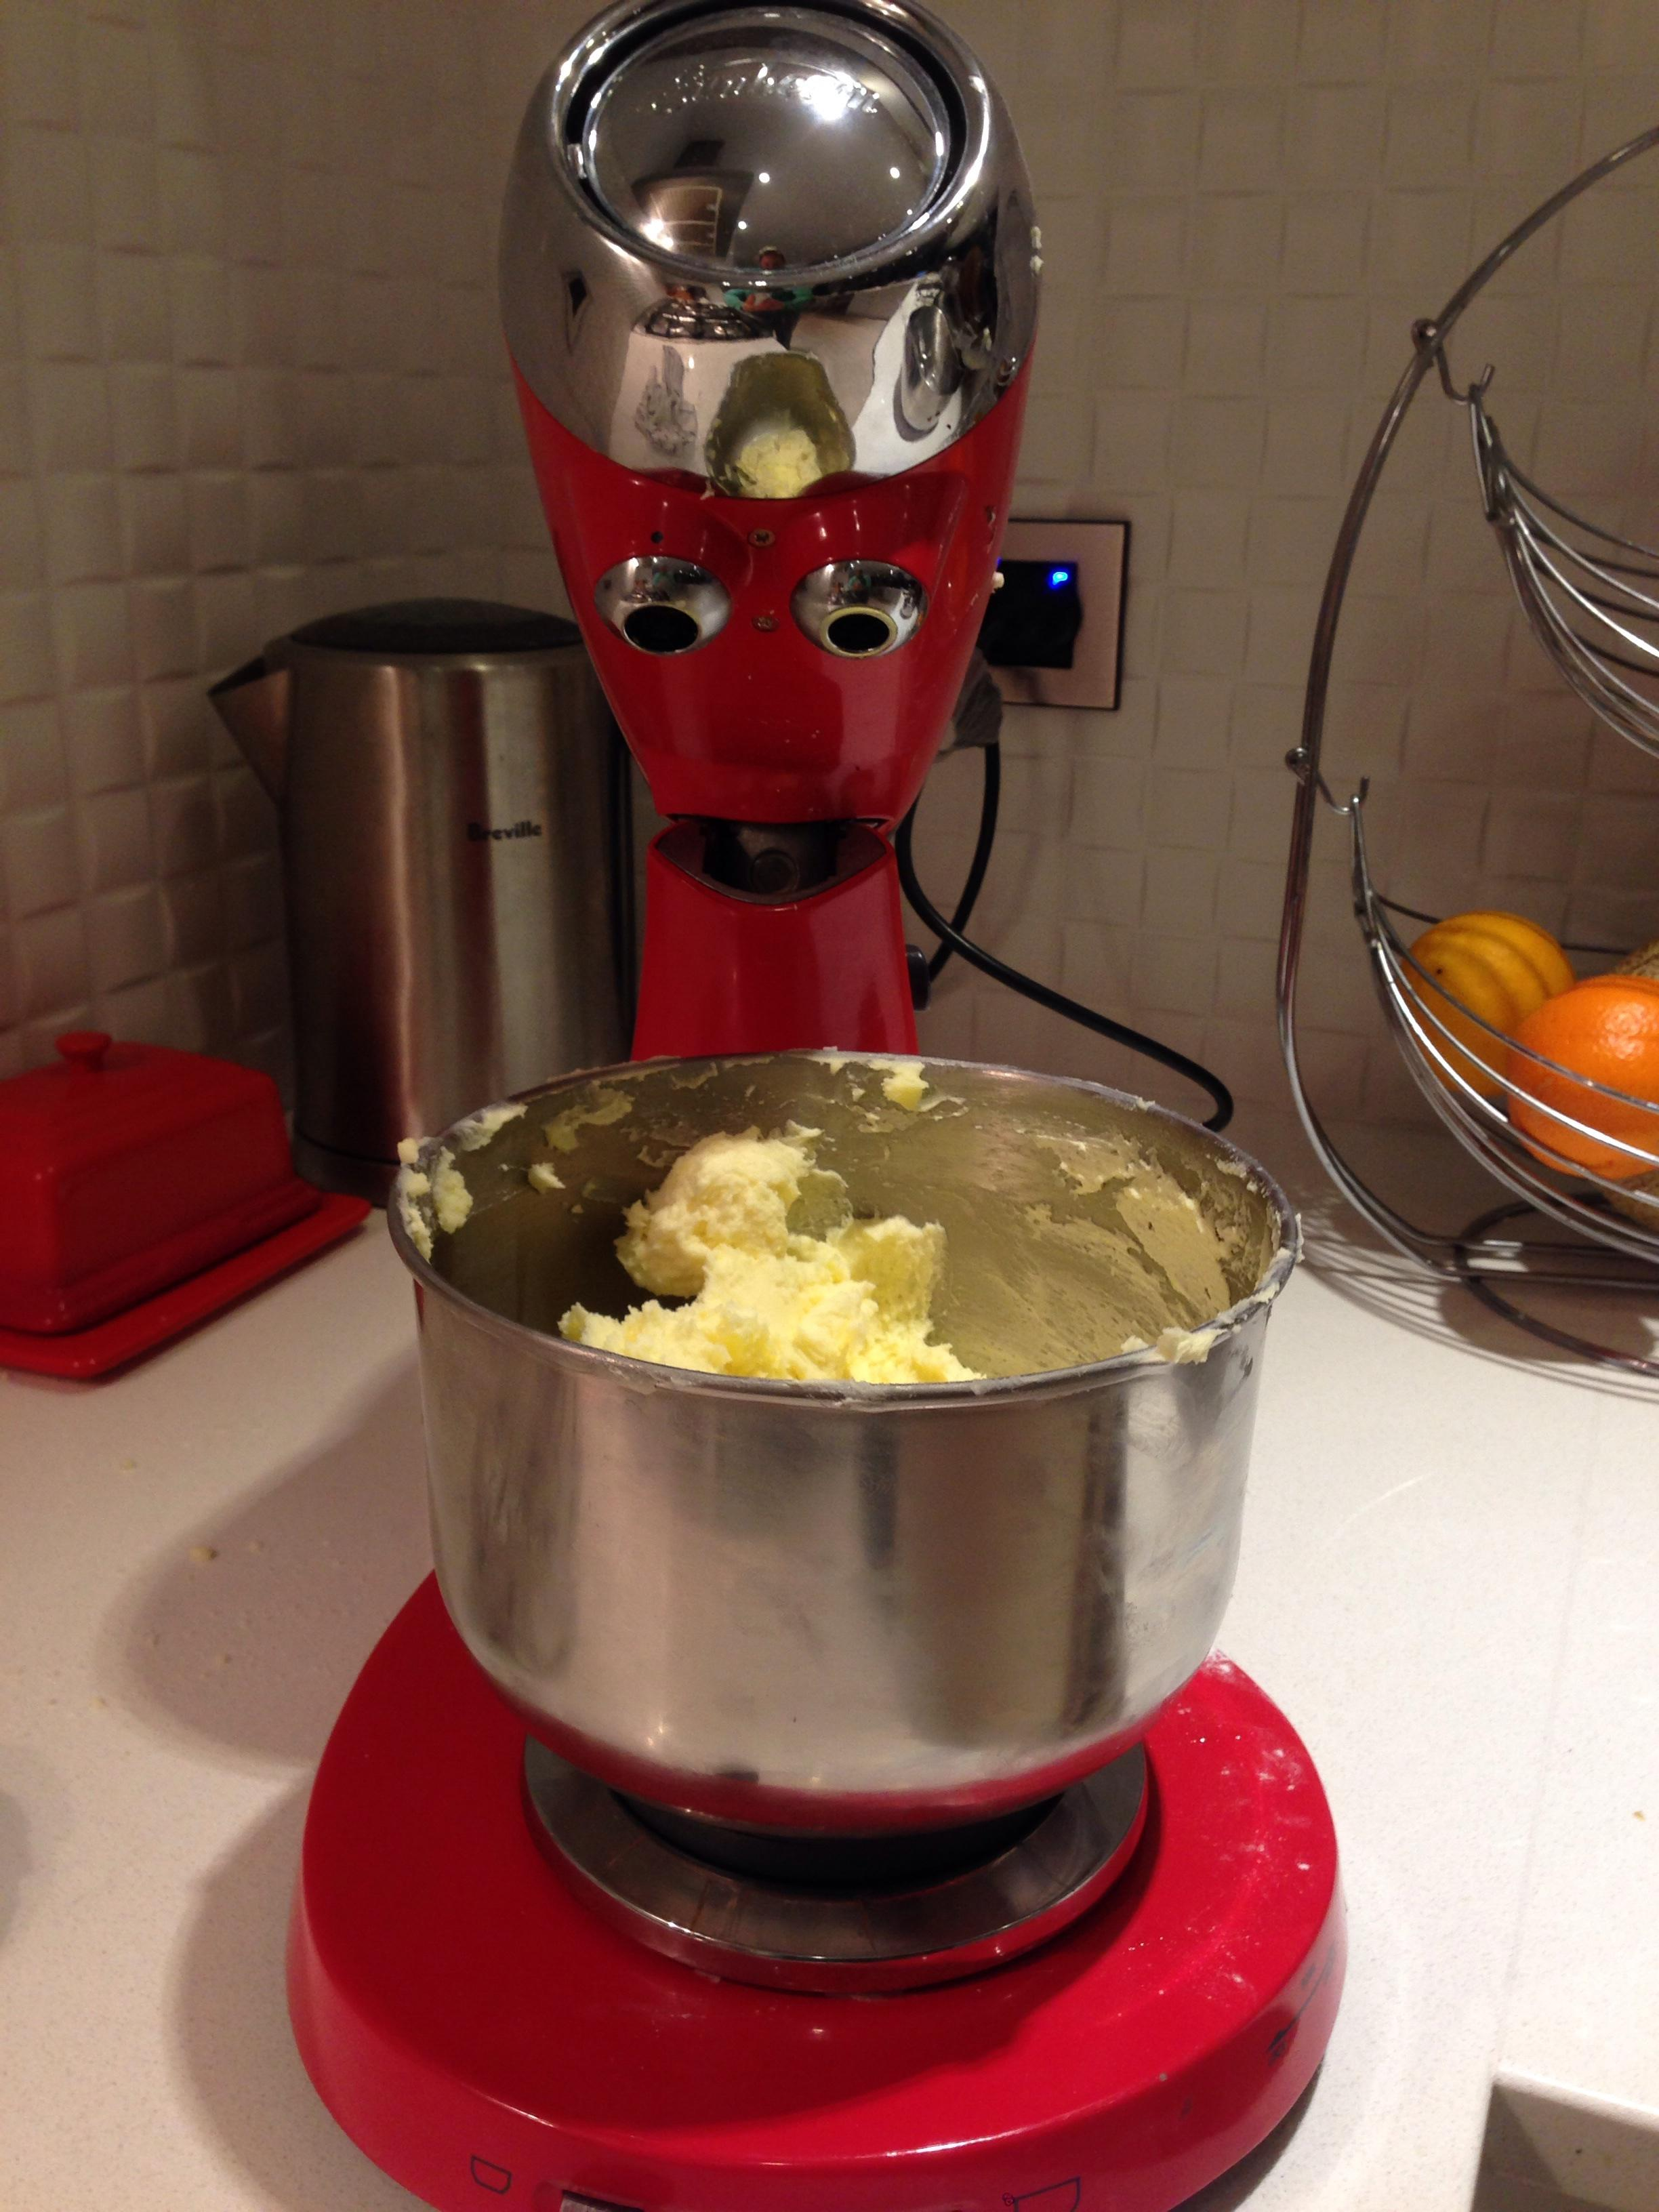 A stand mixer has an expression of despair on its face thinking what have i done